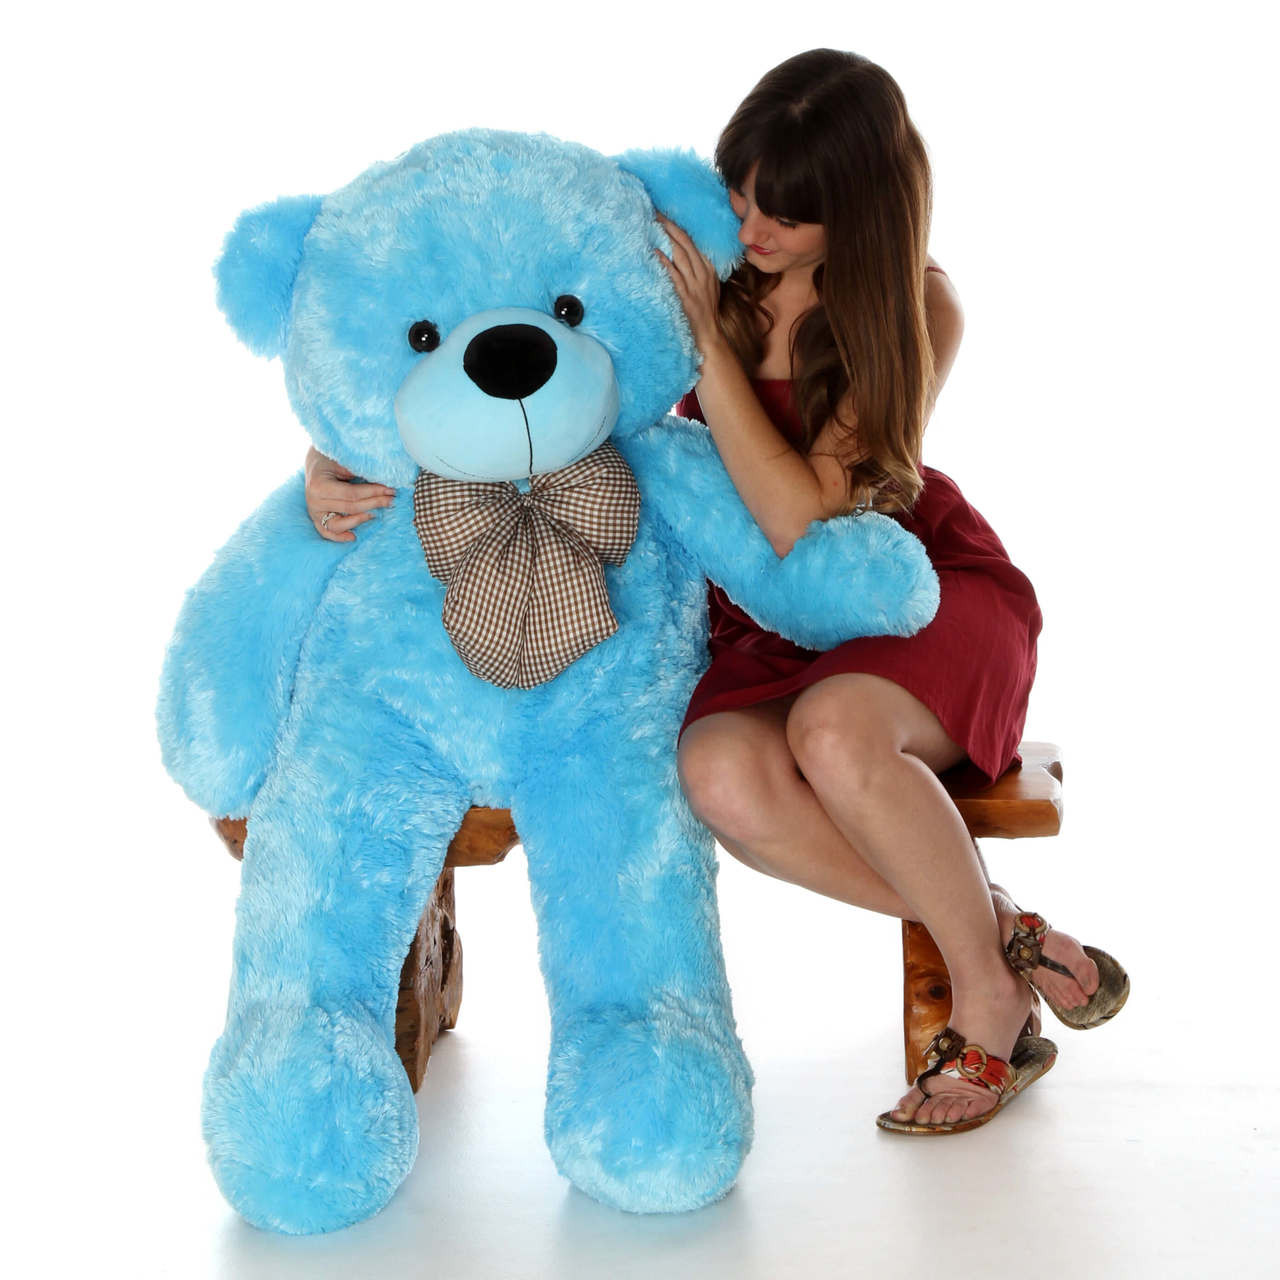 4ft Amazing Life Size Blue Teddy Bear Happy Cuddles